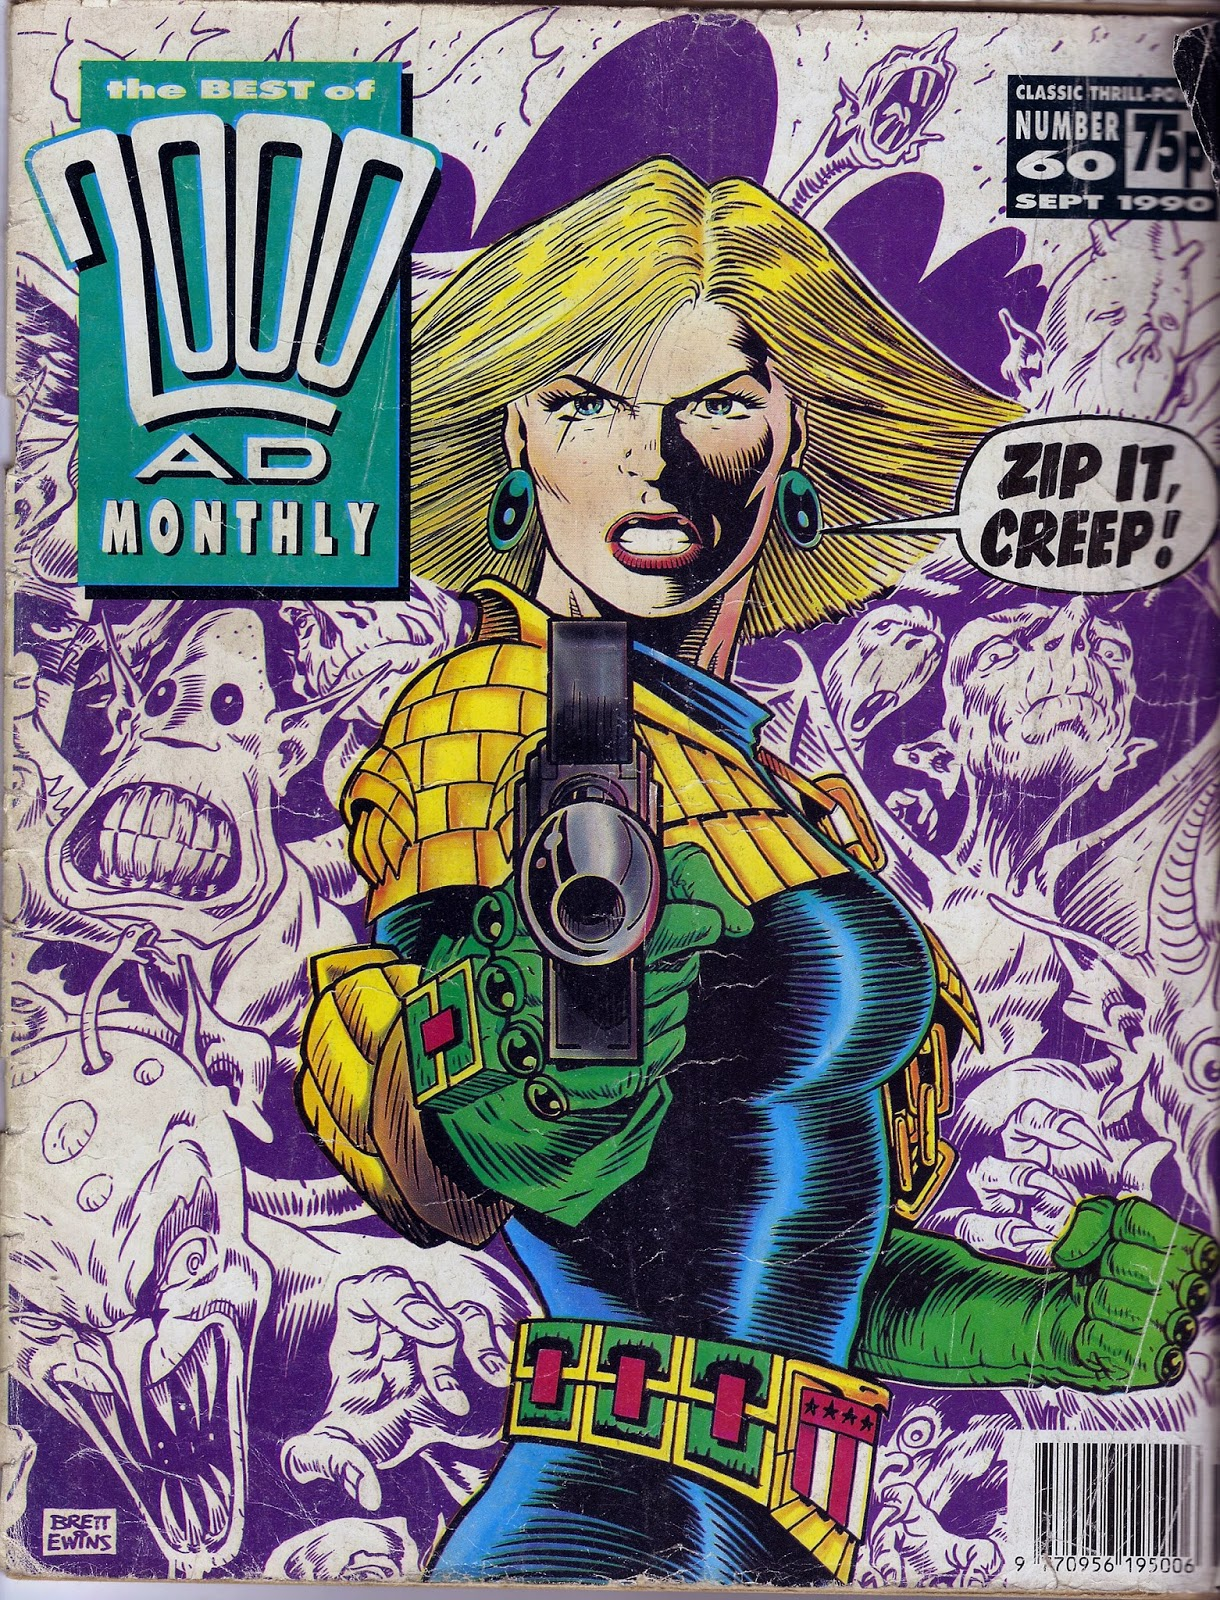 Best of 2000ad Monthly  60